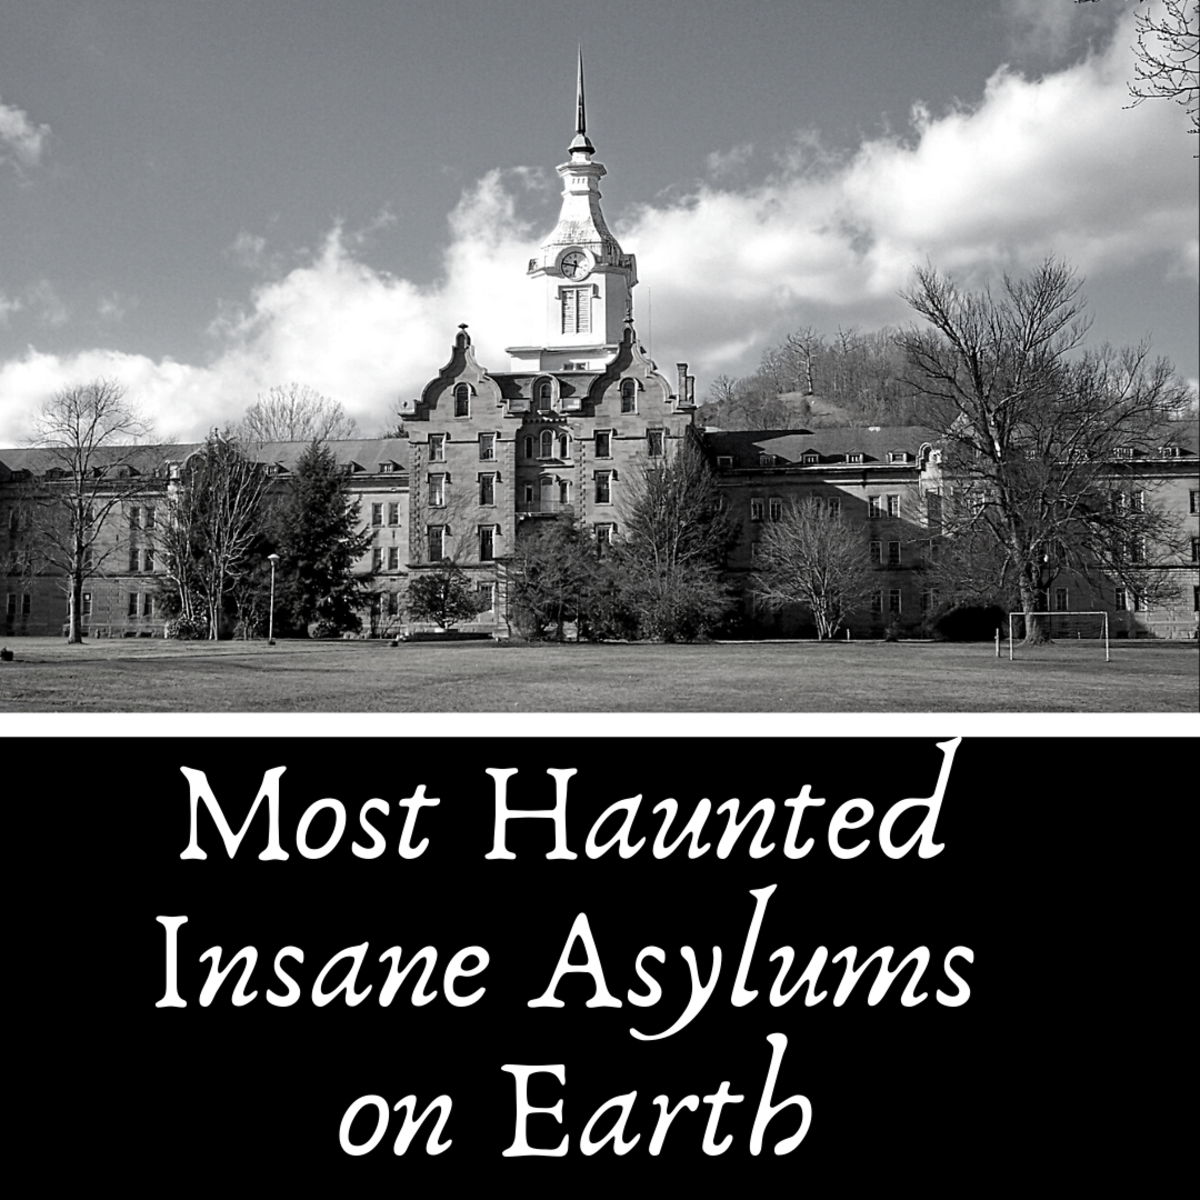 Some Of The Most Haunted Insane Asylums On Earth